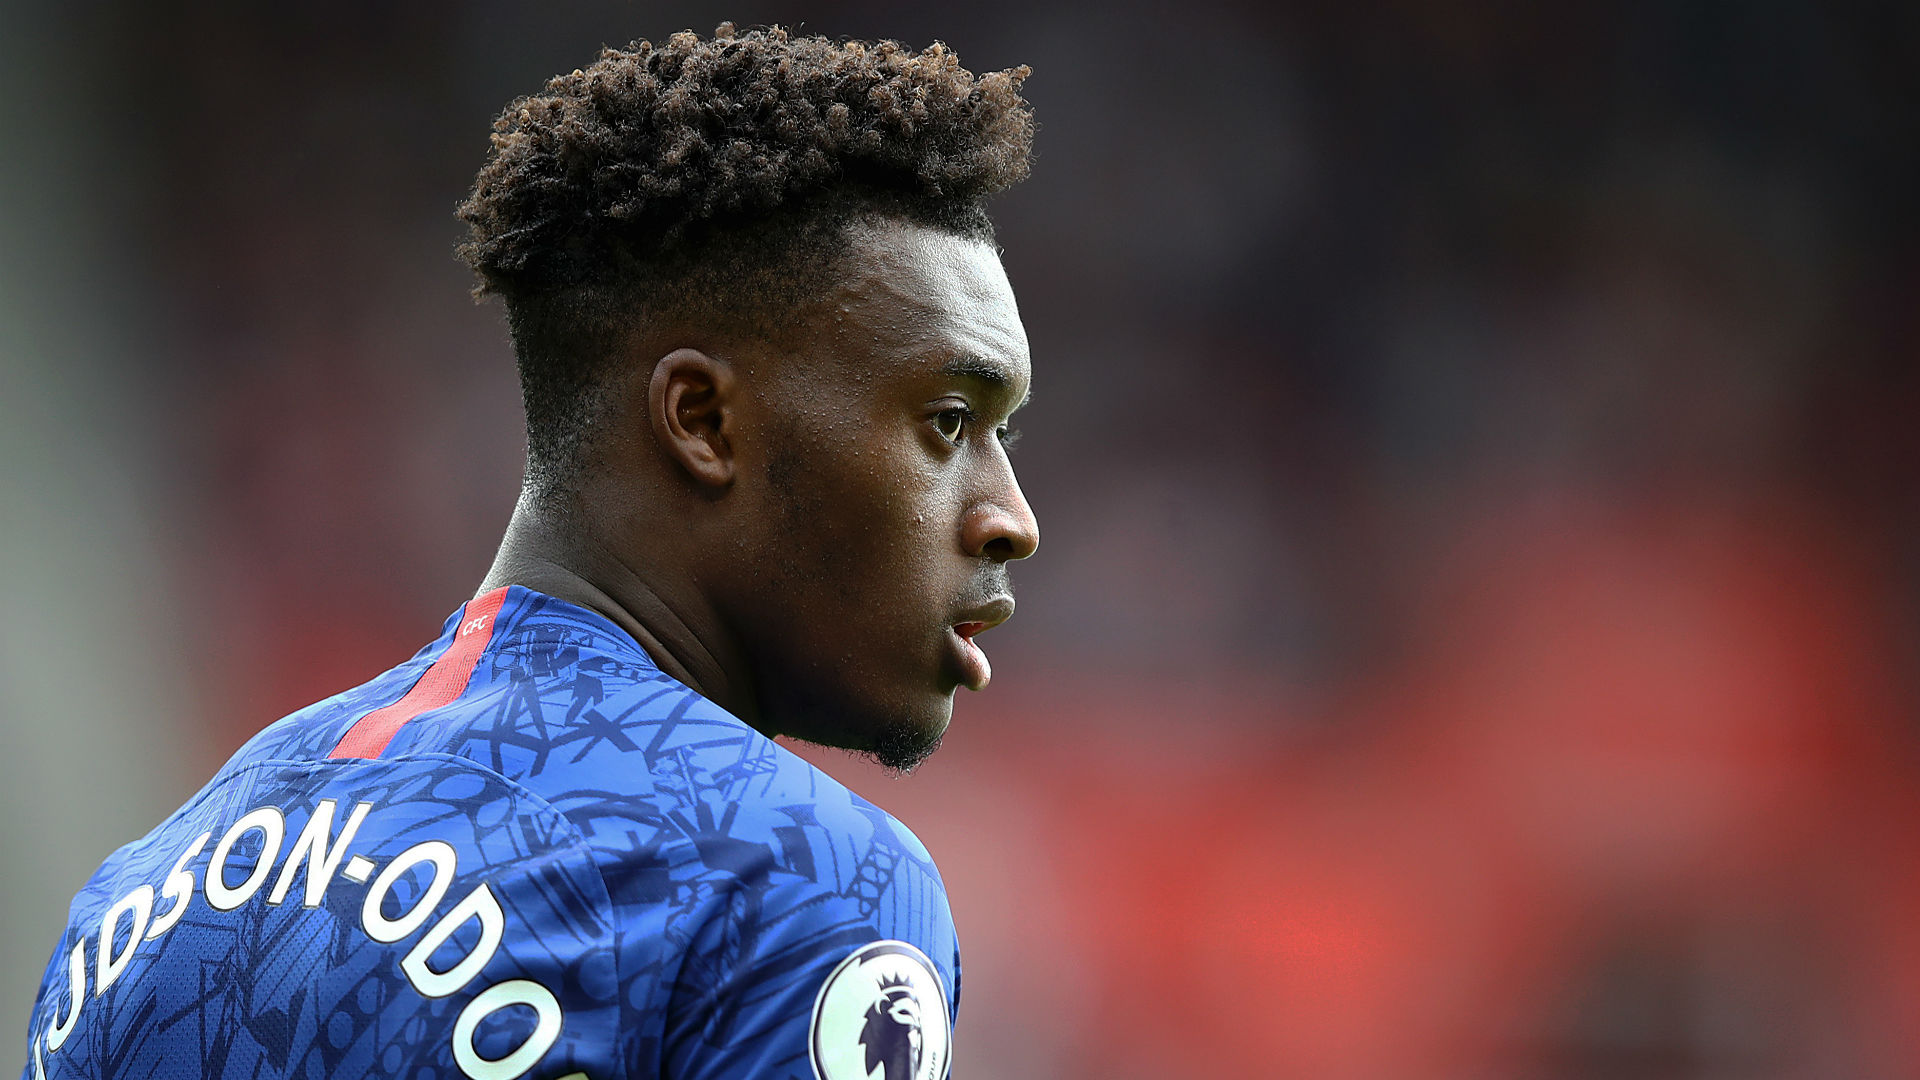 Callum Hudson-Odoi admits fearing end of career after Achilles injury